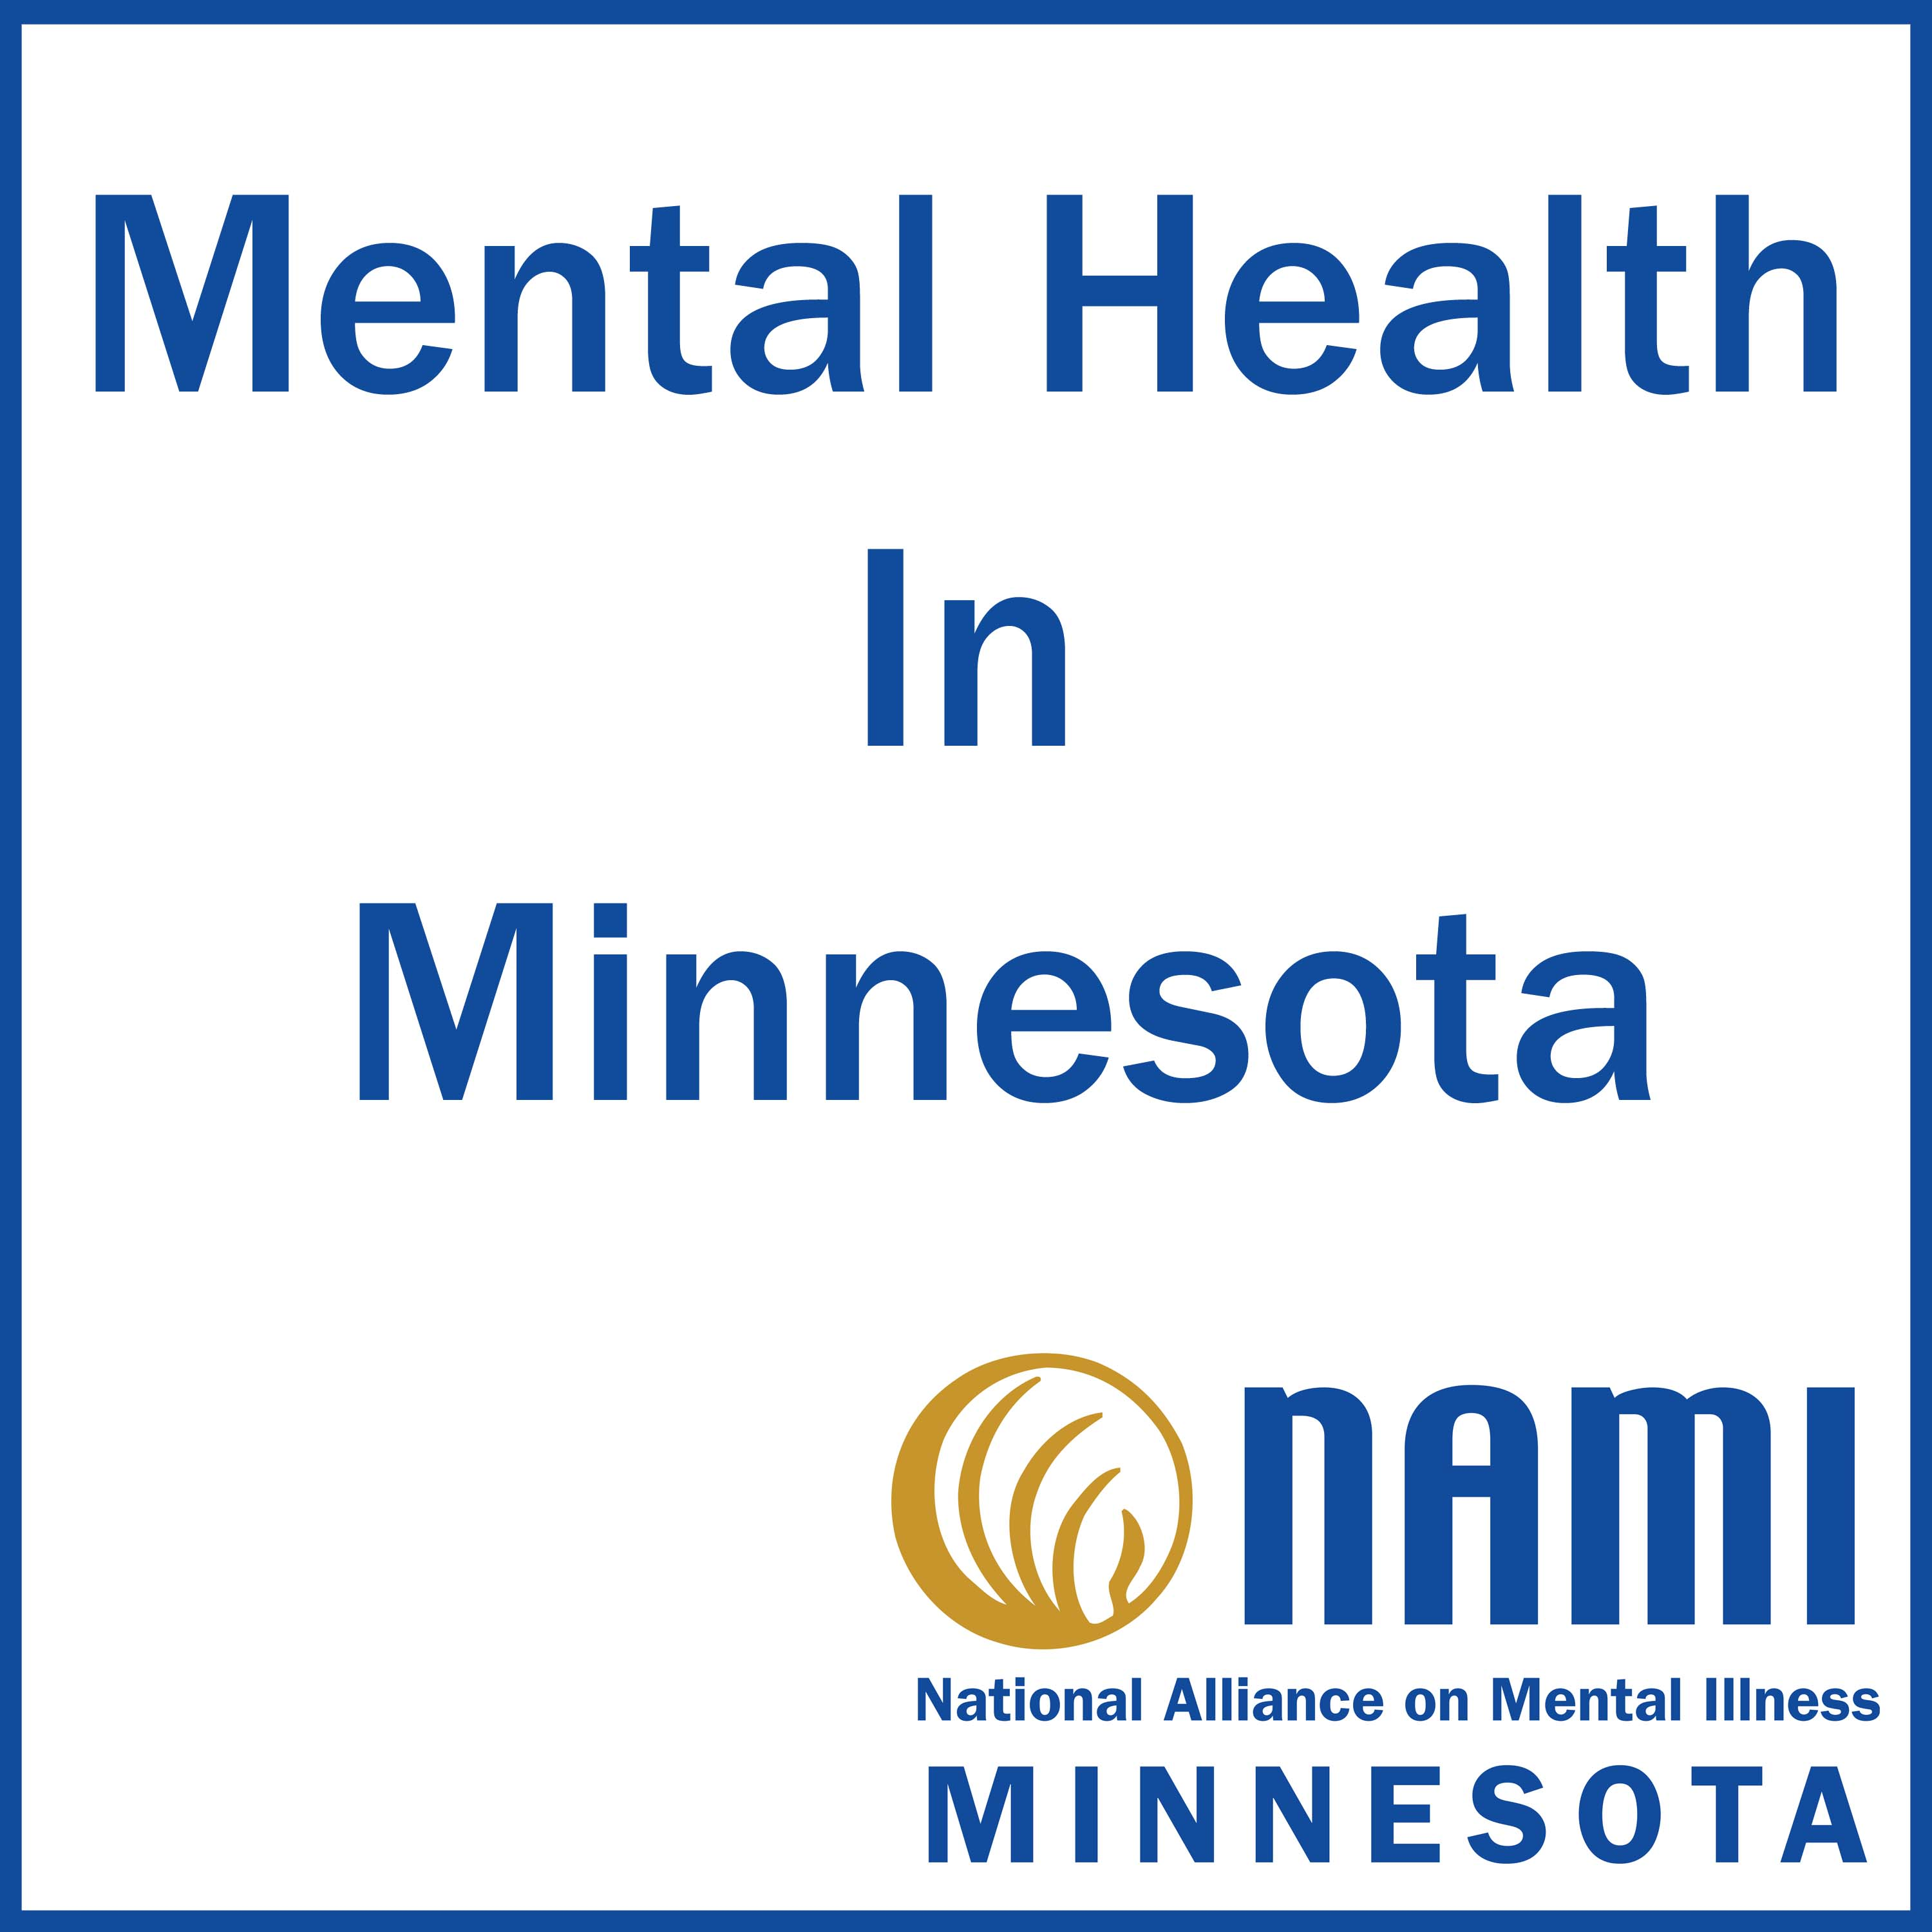 Anxiety in Older Adults, Gray Matters/Older Adults Programming at NAMI Minnesota with Kay King, ep. 27